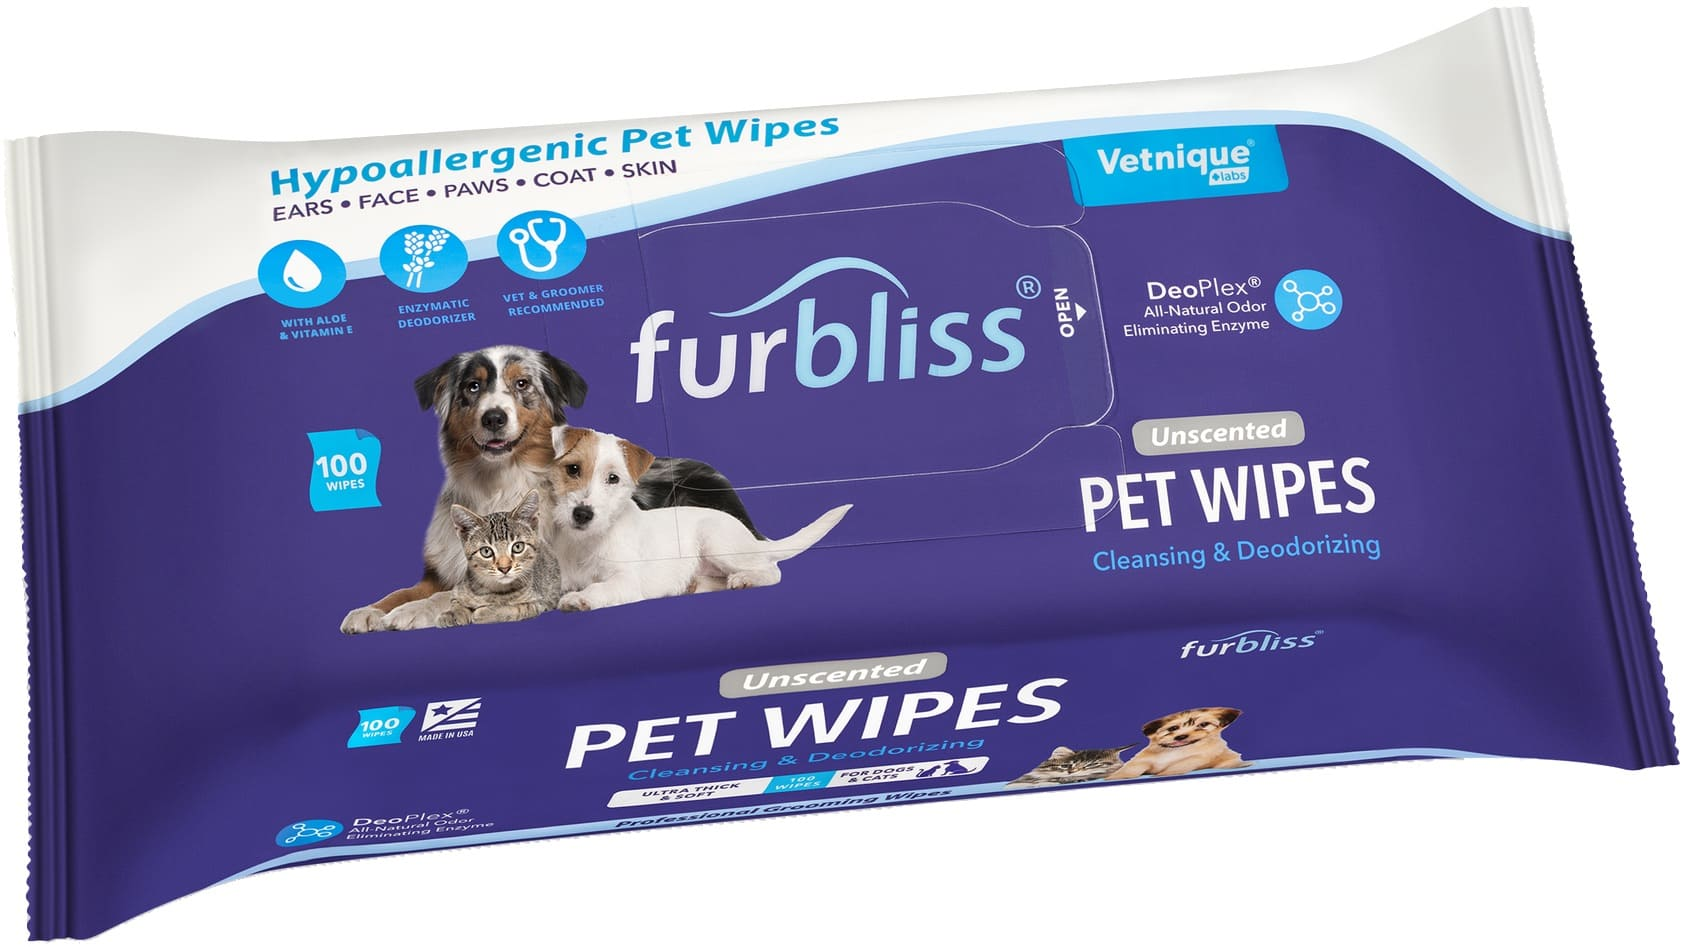 Furbliss Hygienic Grooming Pet Wipes 100 count (Single) Unscented 1